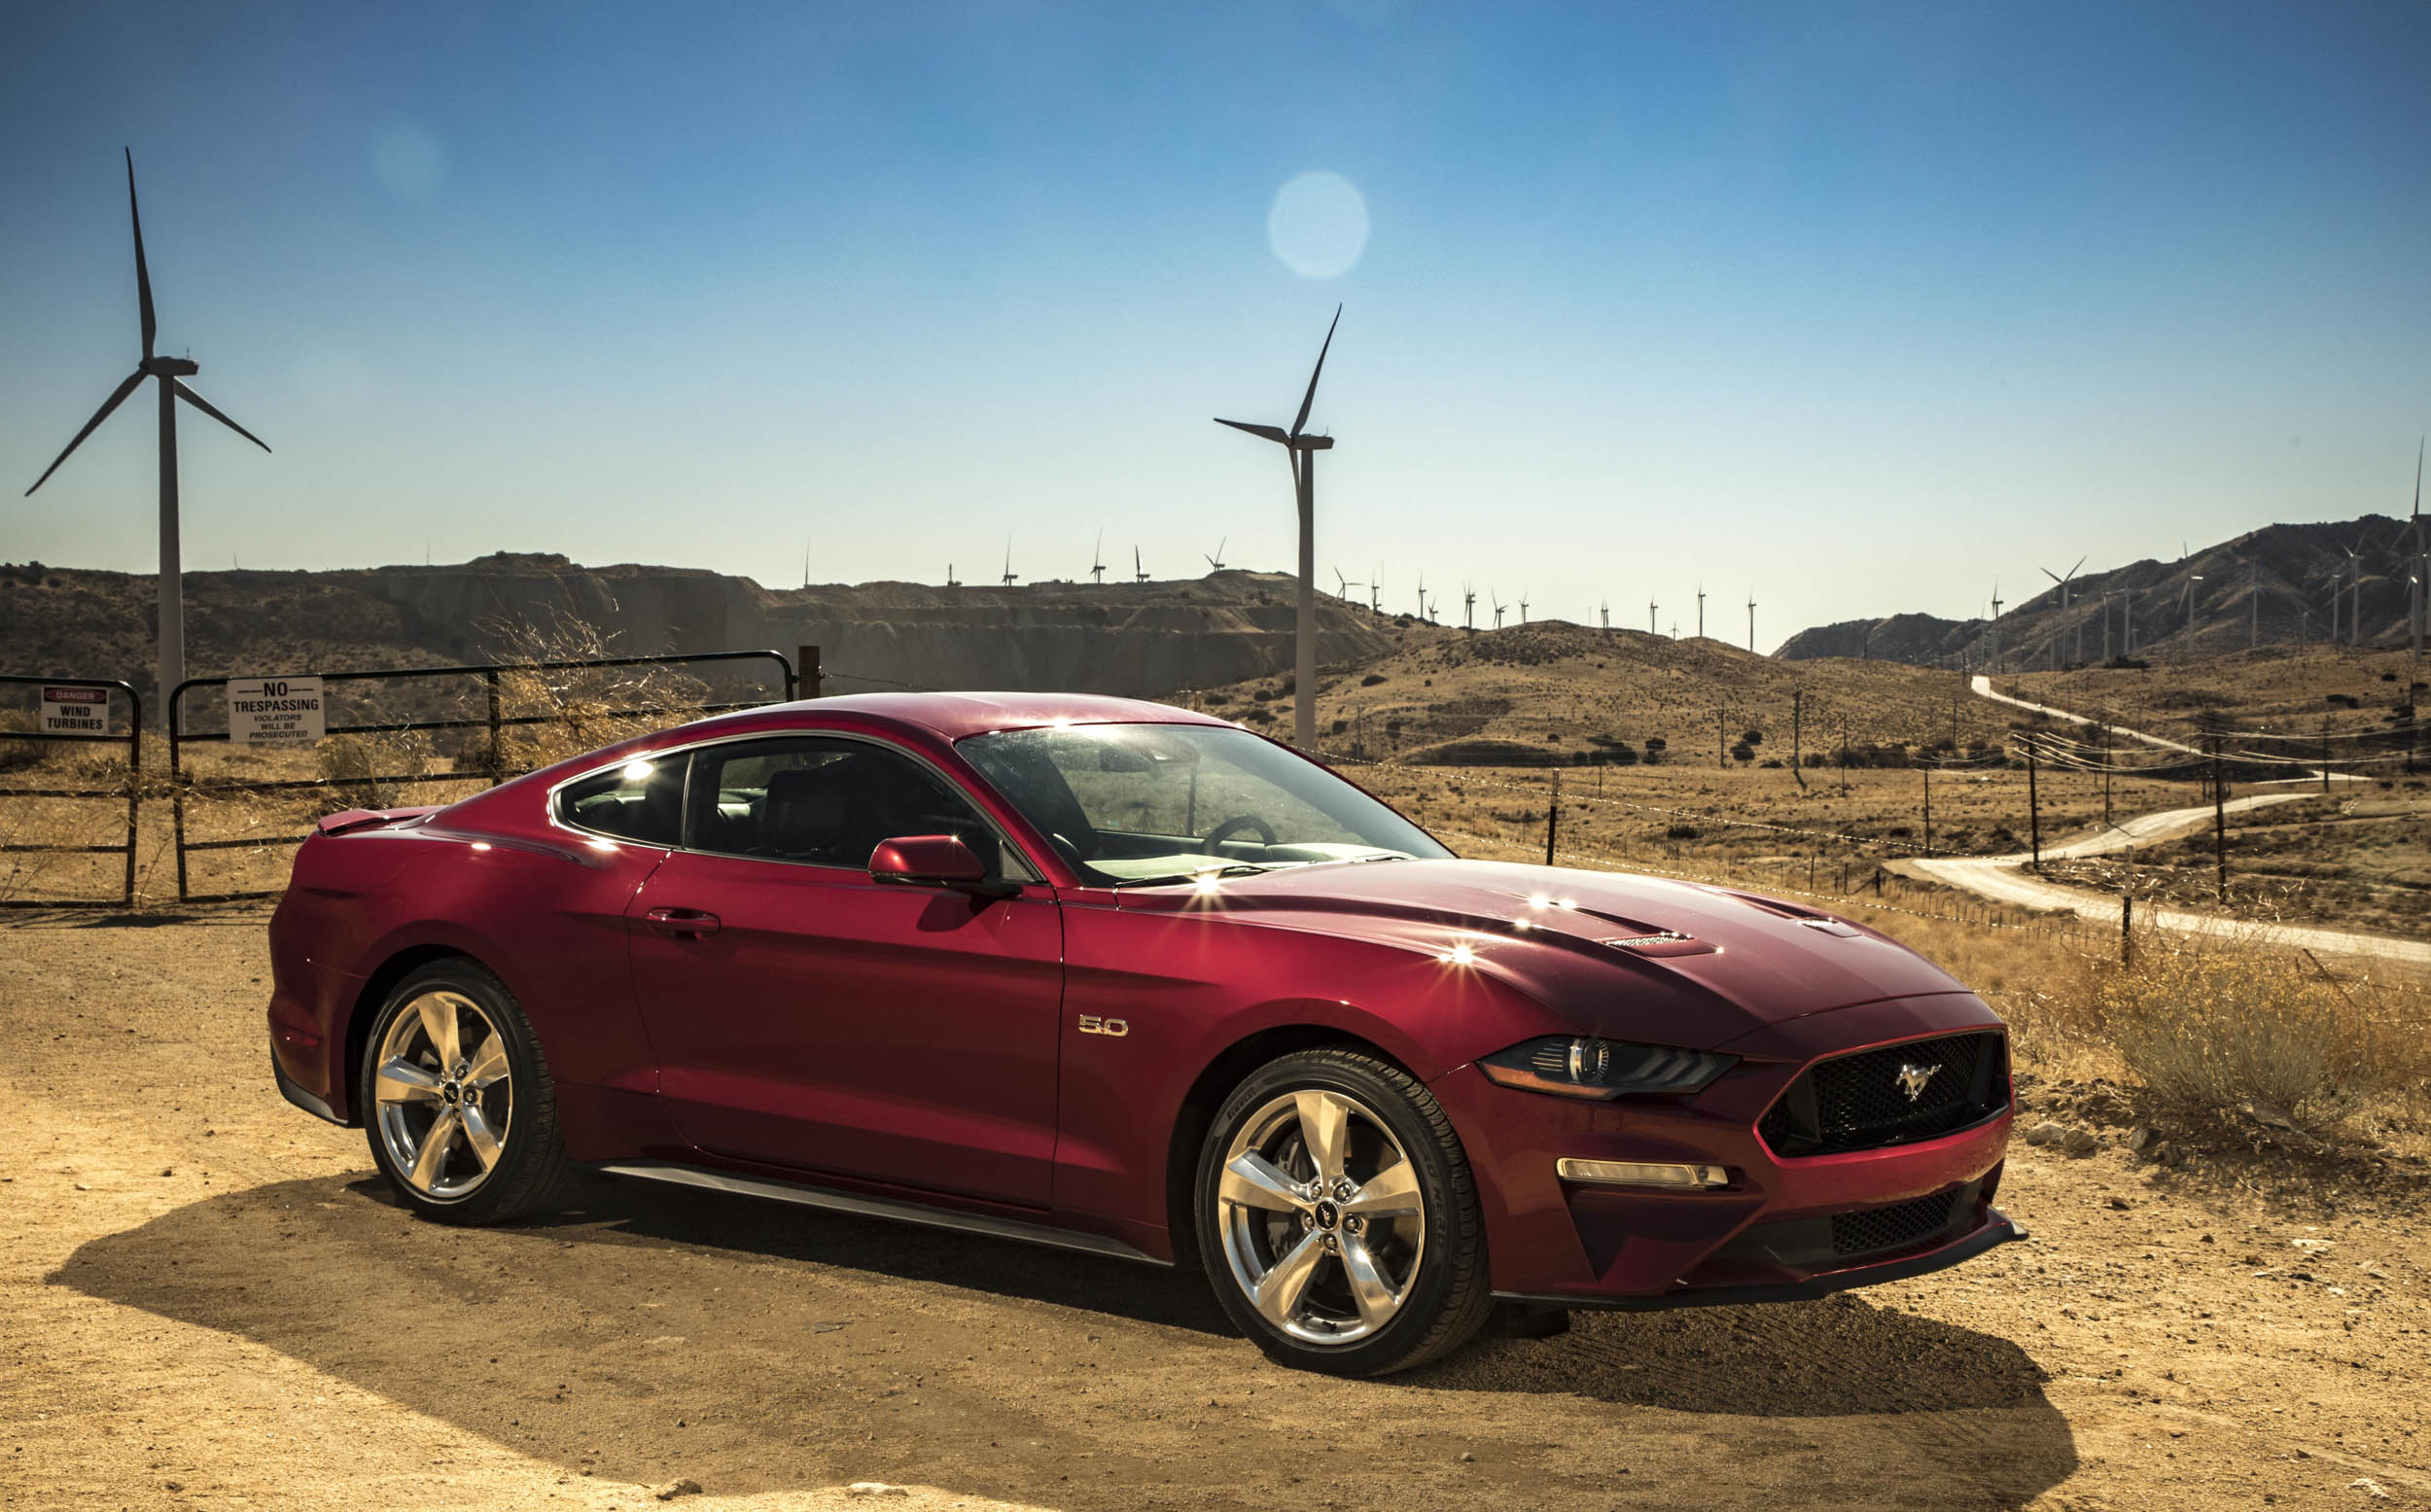 2018 Ford Mustang GT front 3/4